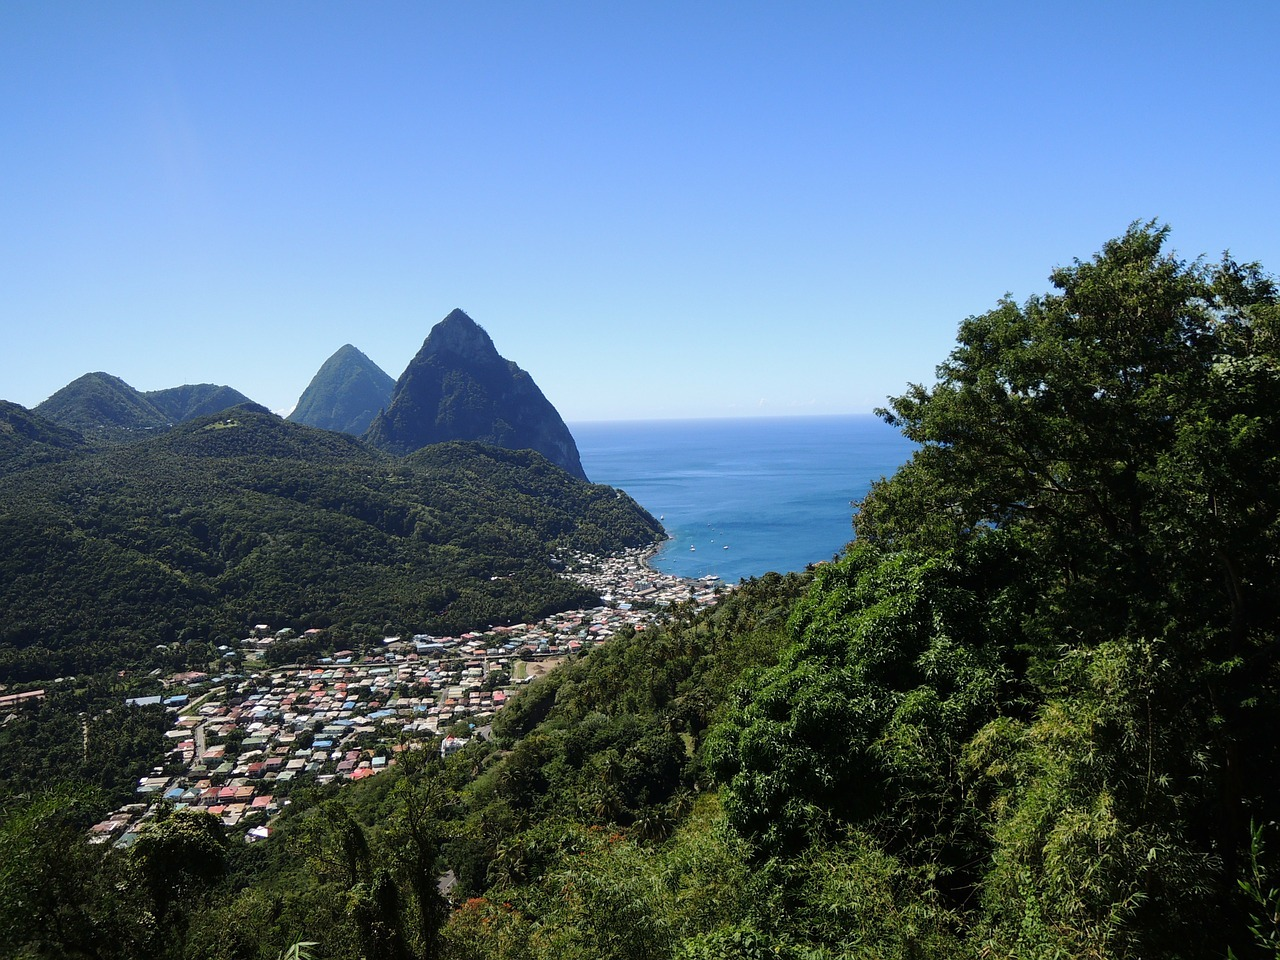 st-lucia-106120_1280